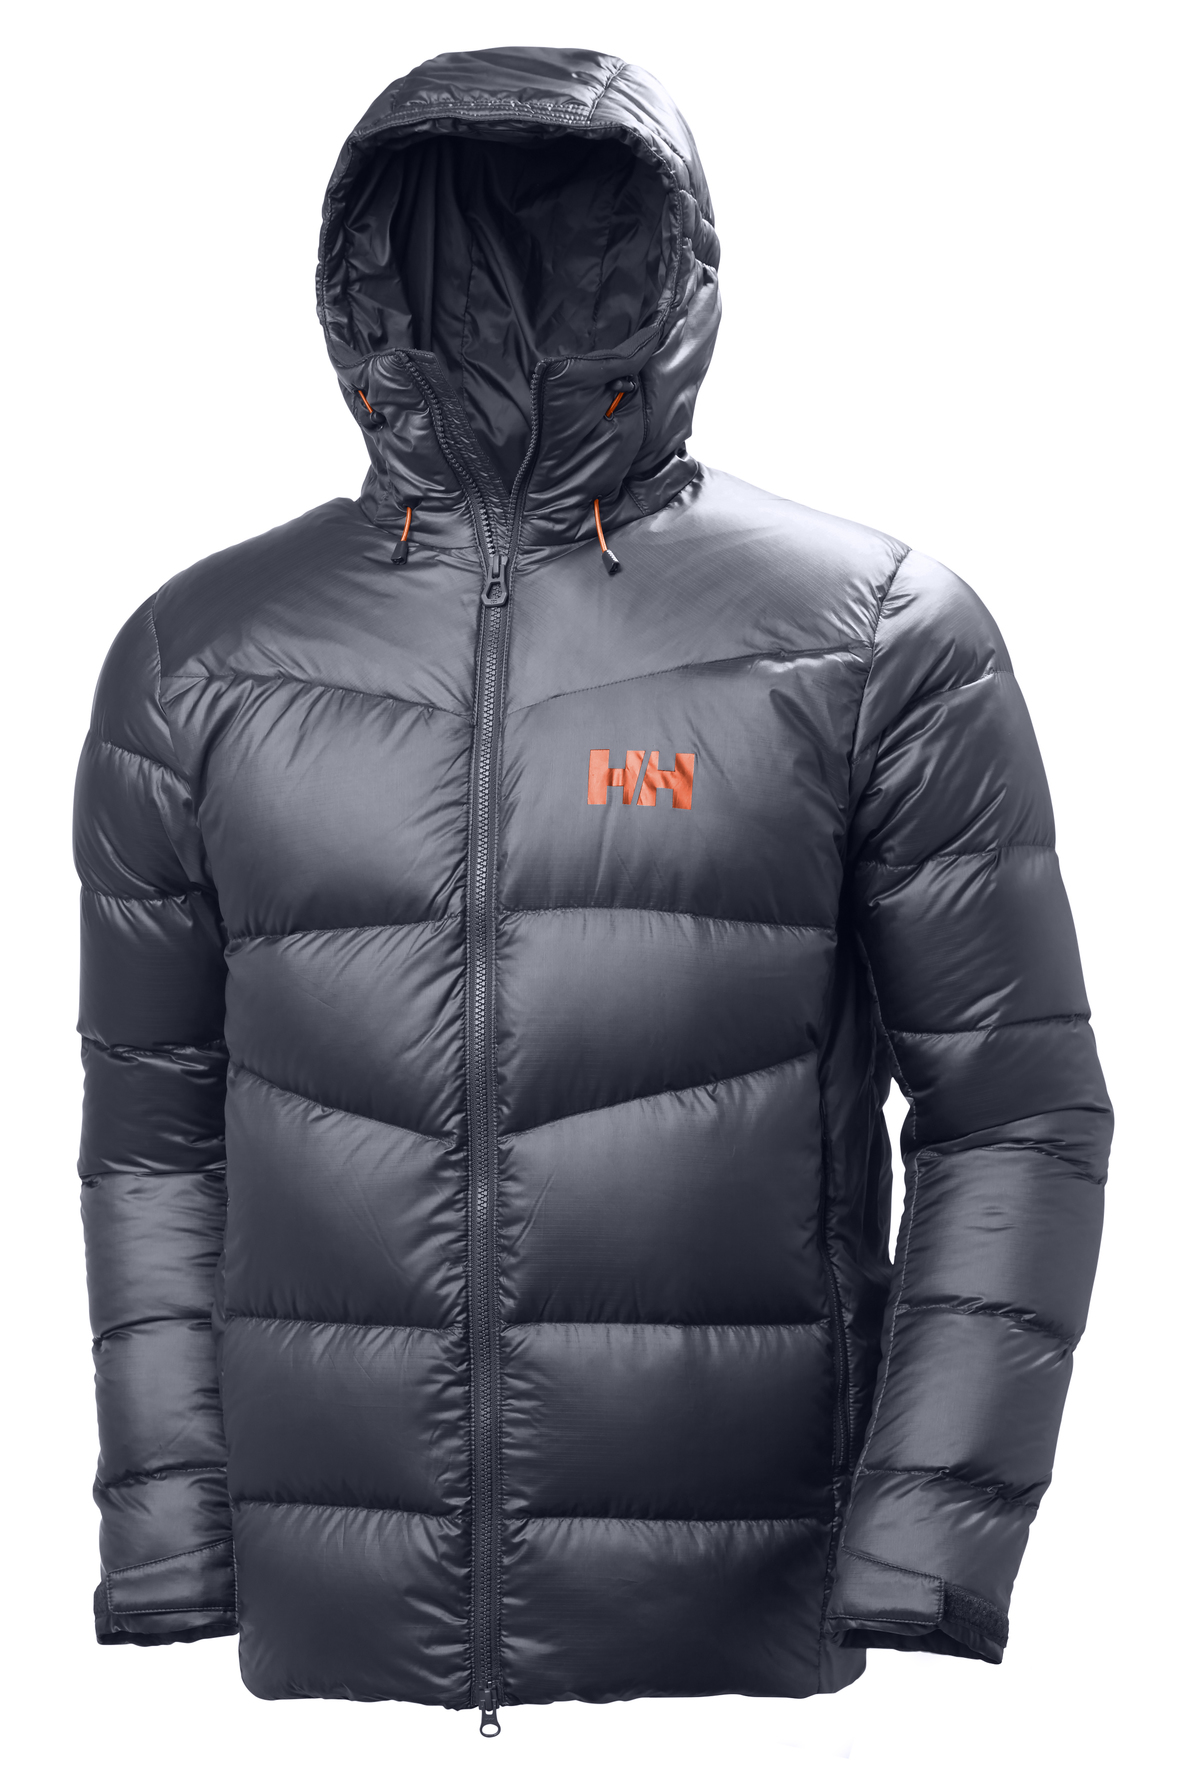 8a85d8b5 Jackets | Guide and Price Comparison | Velomio.com